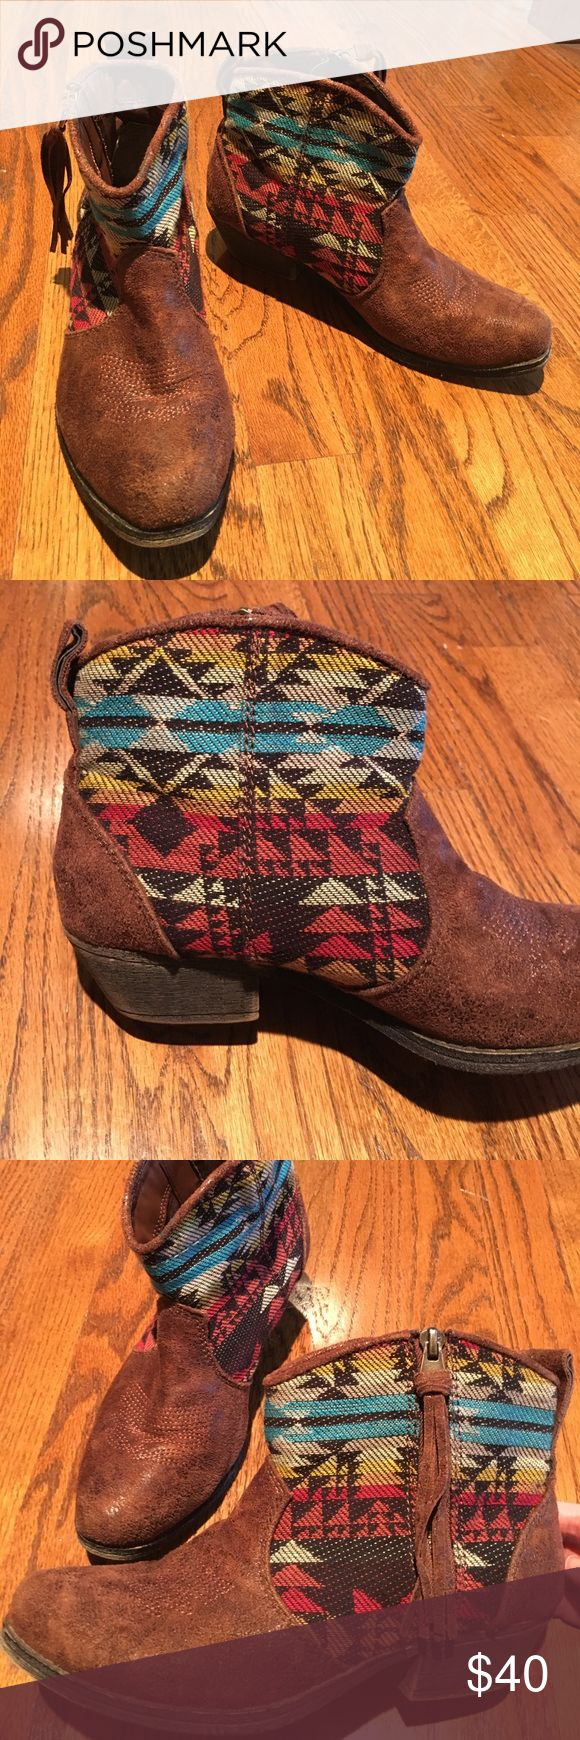 Big Buddha Tribal Print Ankle Booties Big Buddha tribal print ankle boogies- small heel, fringe on the zipper, and very comfortable. In excellent condition. Size 7 Big Buddha Shoes Ankle Boots & Booties